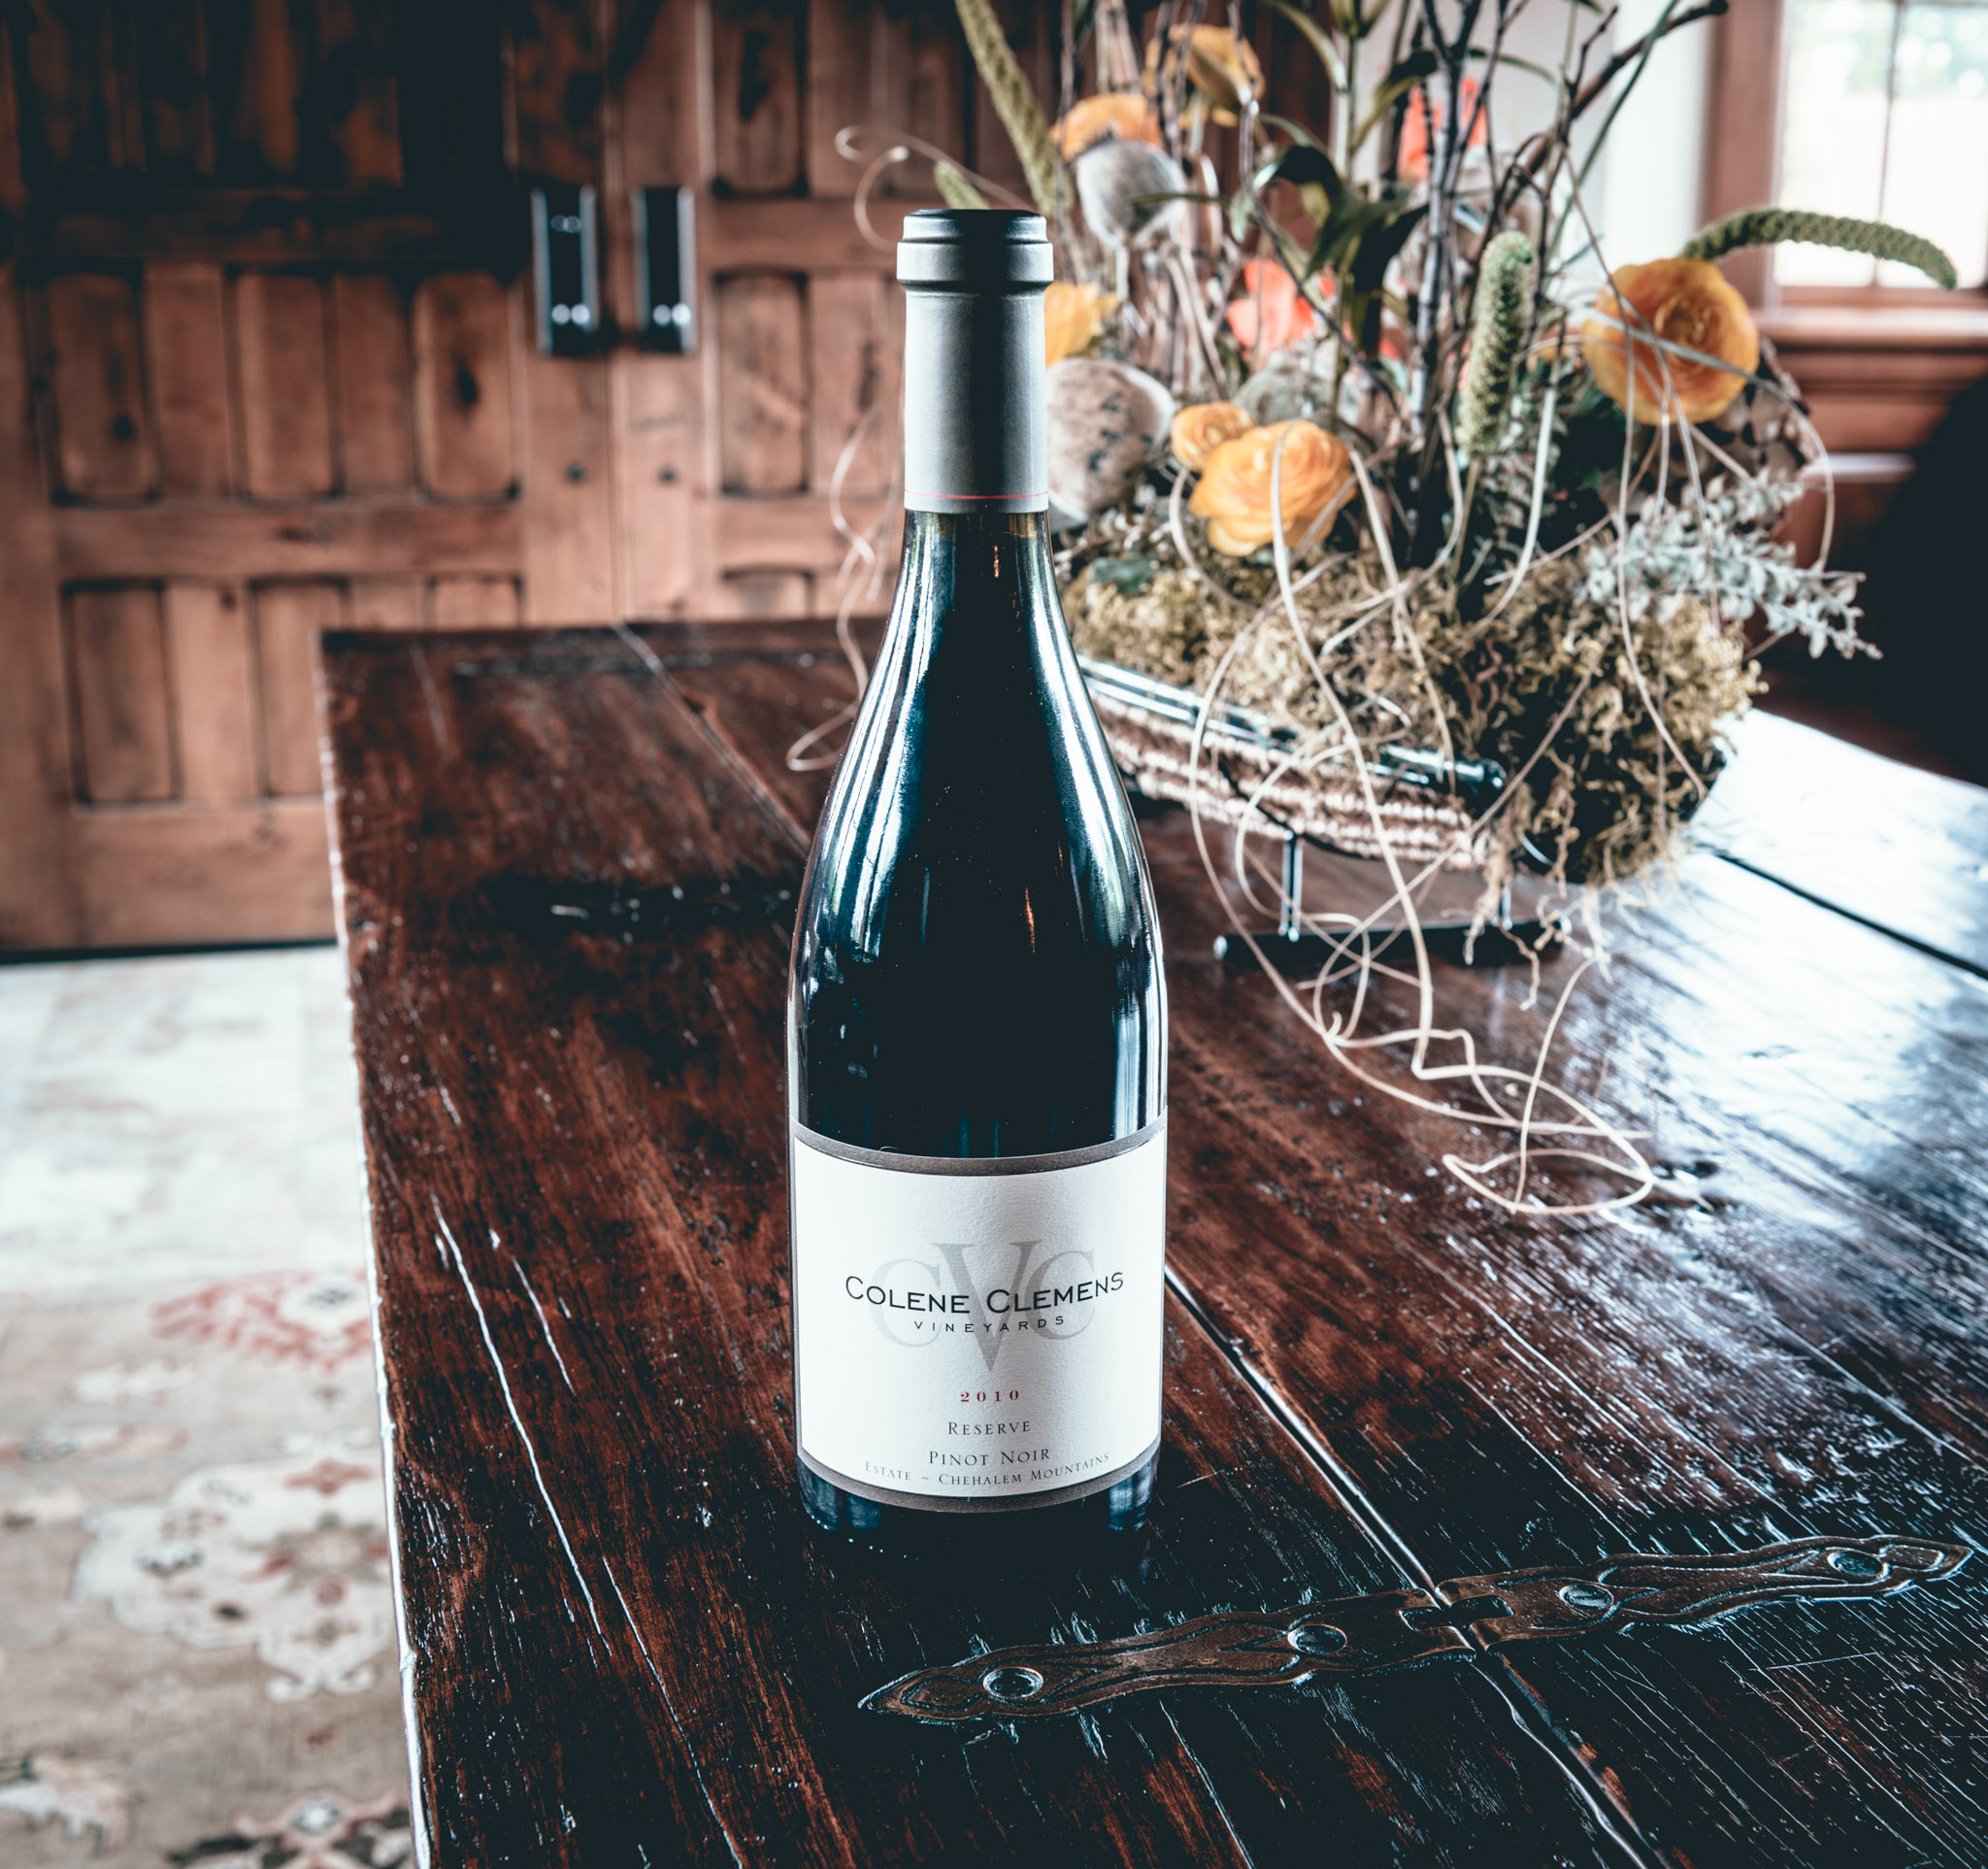 US : Oregon : Tasting at Colene Clemens in the Chehalem Mountains AVA